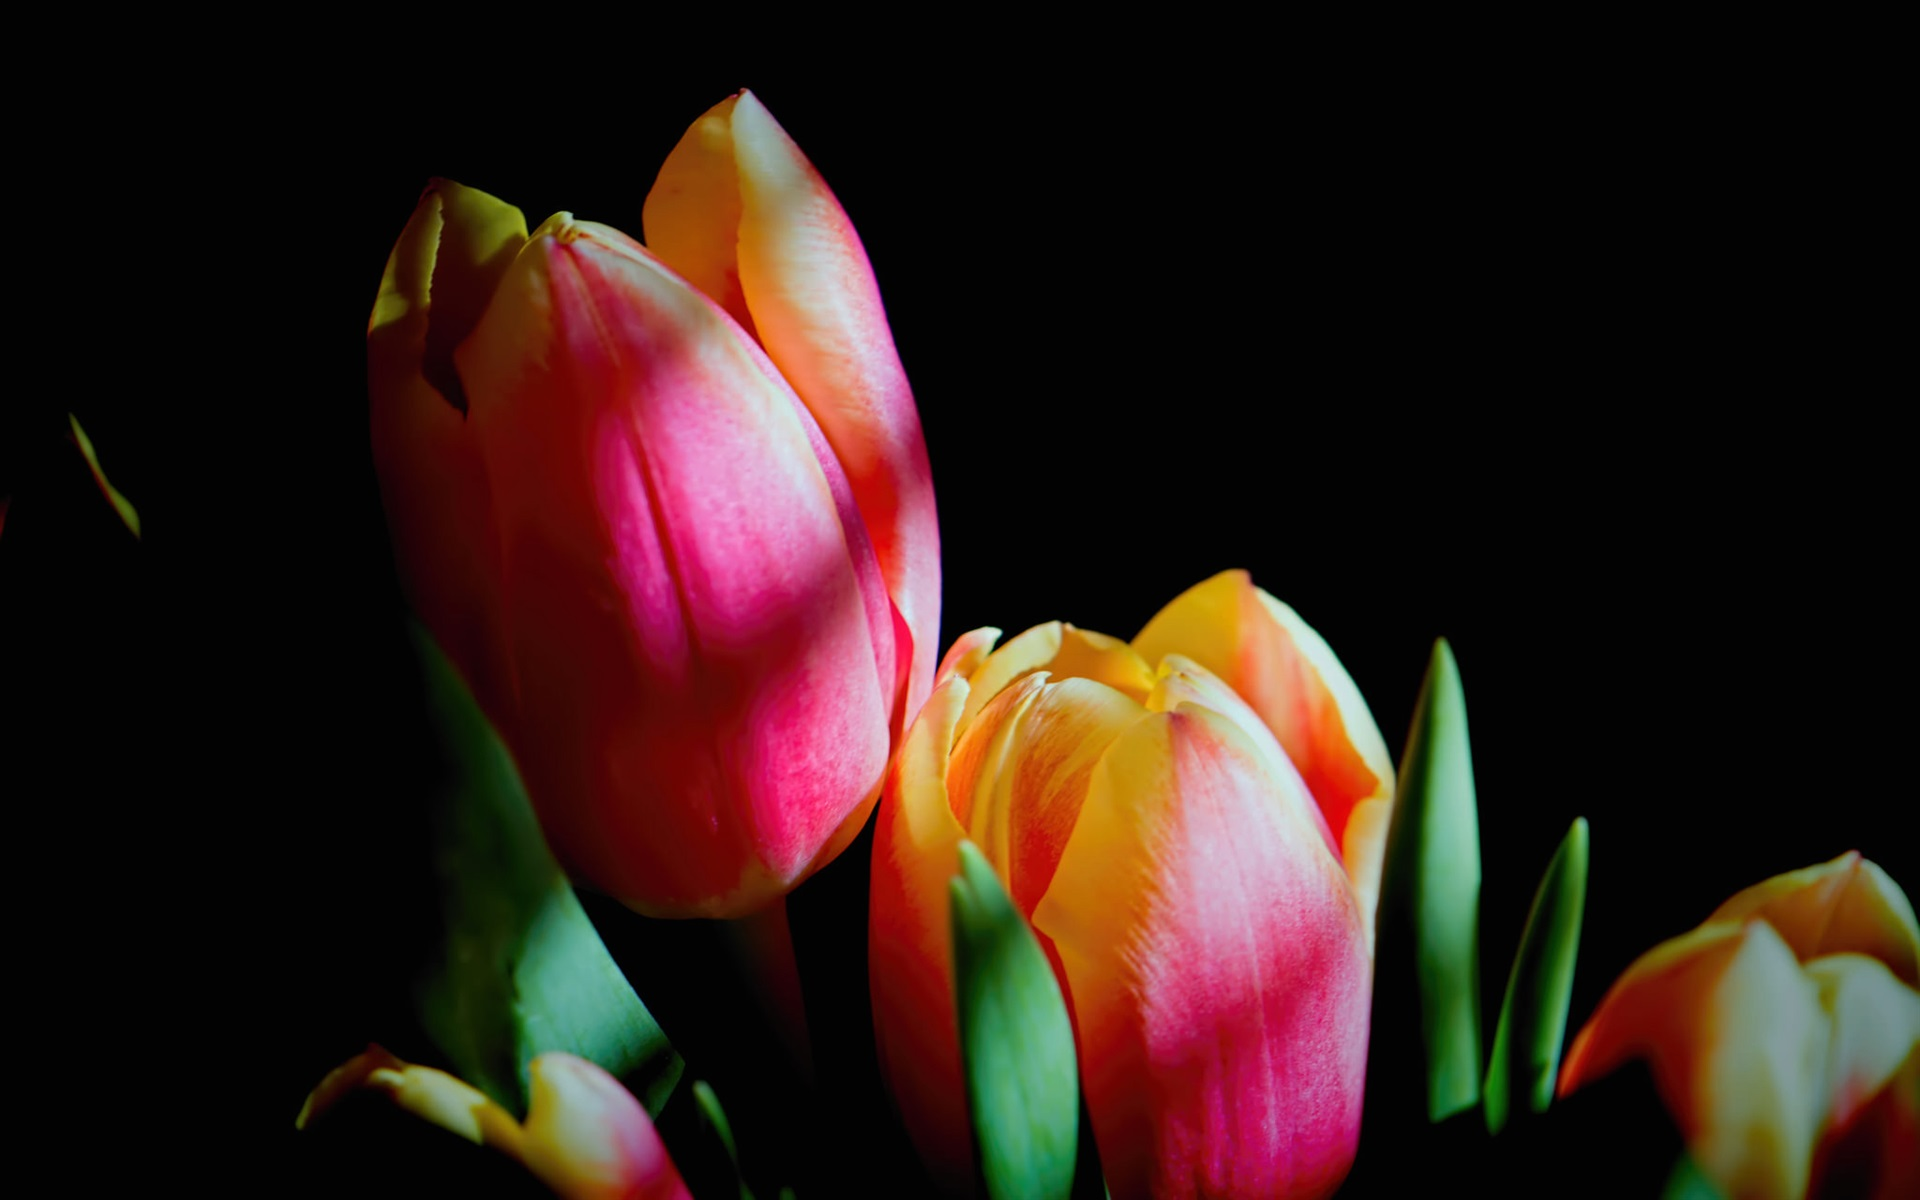 Wallpaper Pink Tulips Flowers Black Background 1920x1200 Hd Picture Image